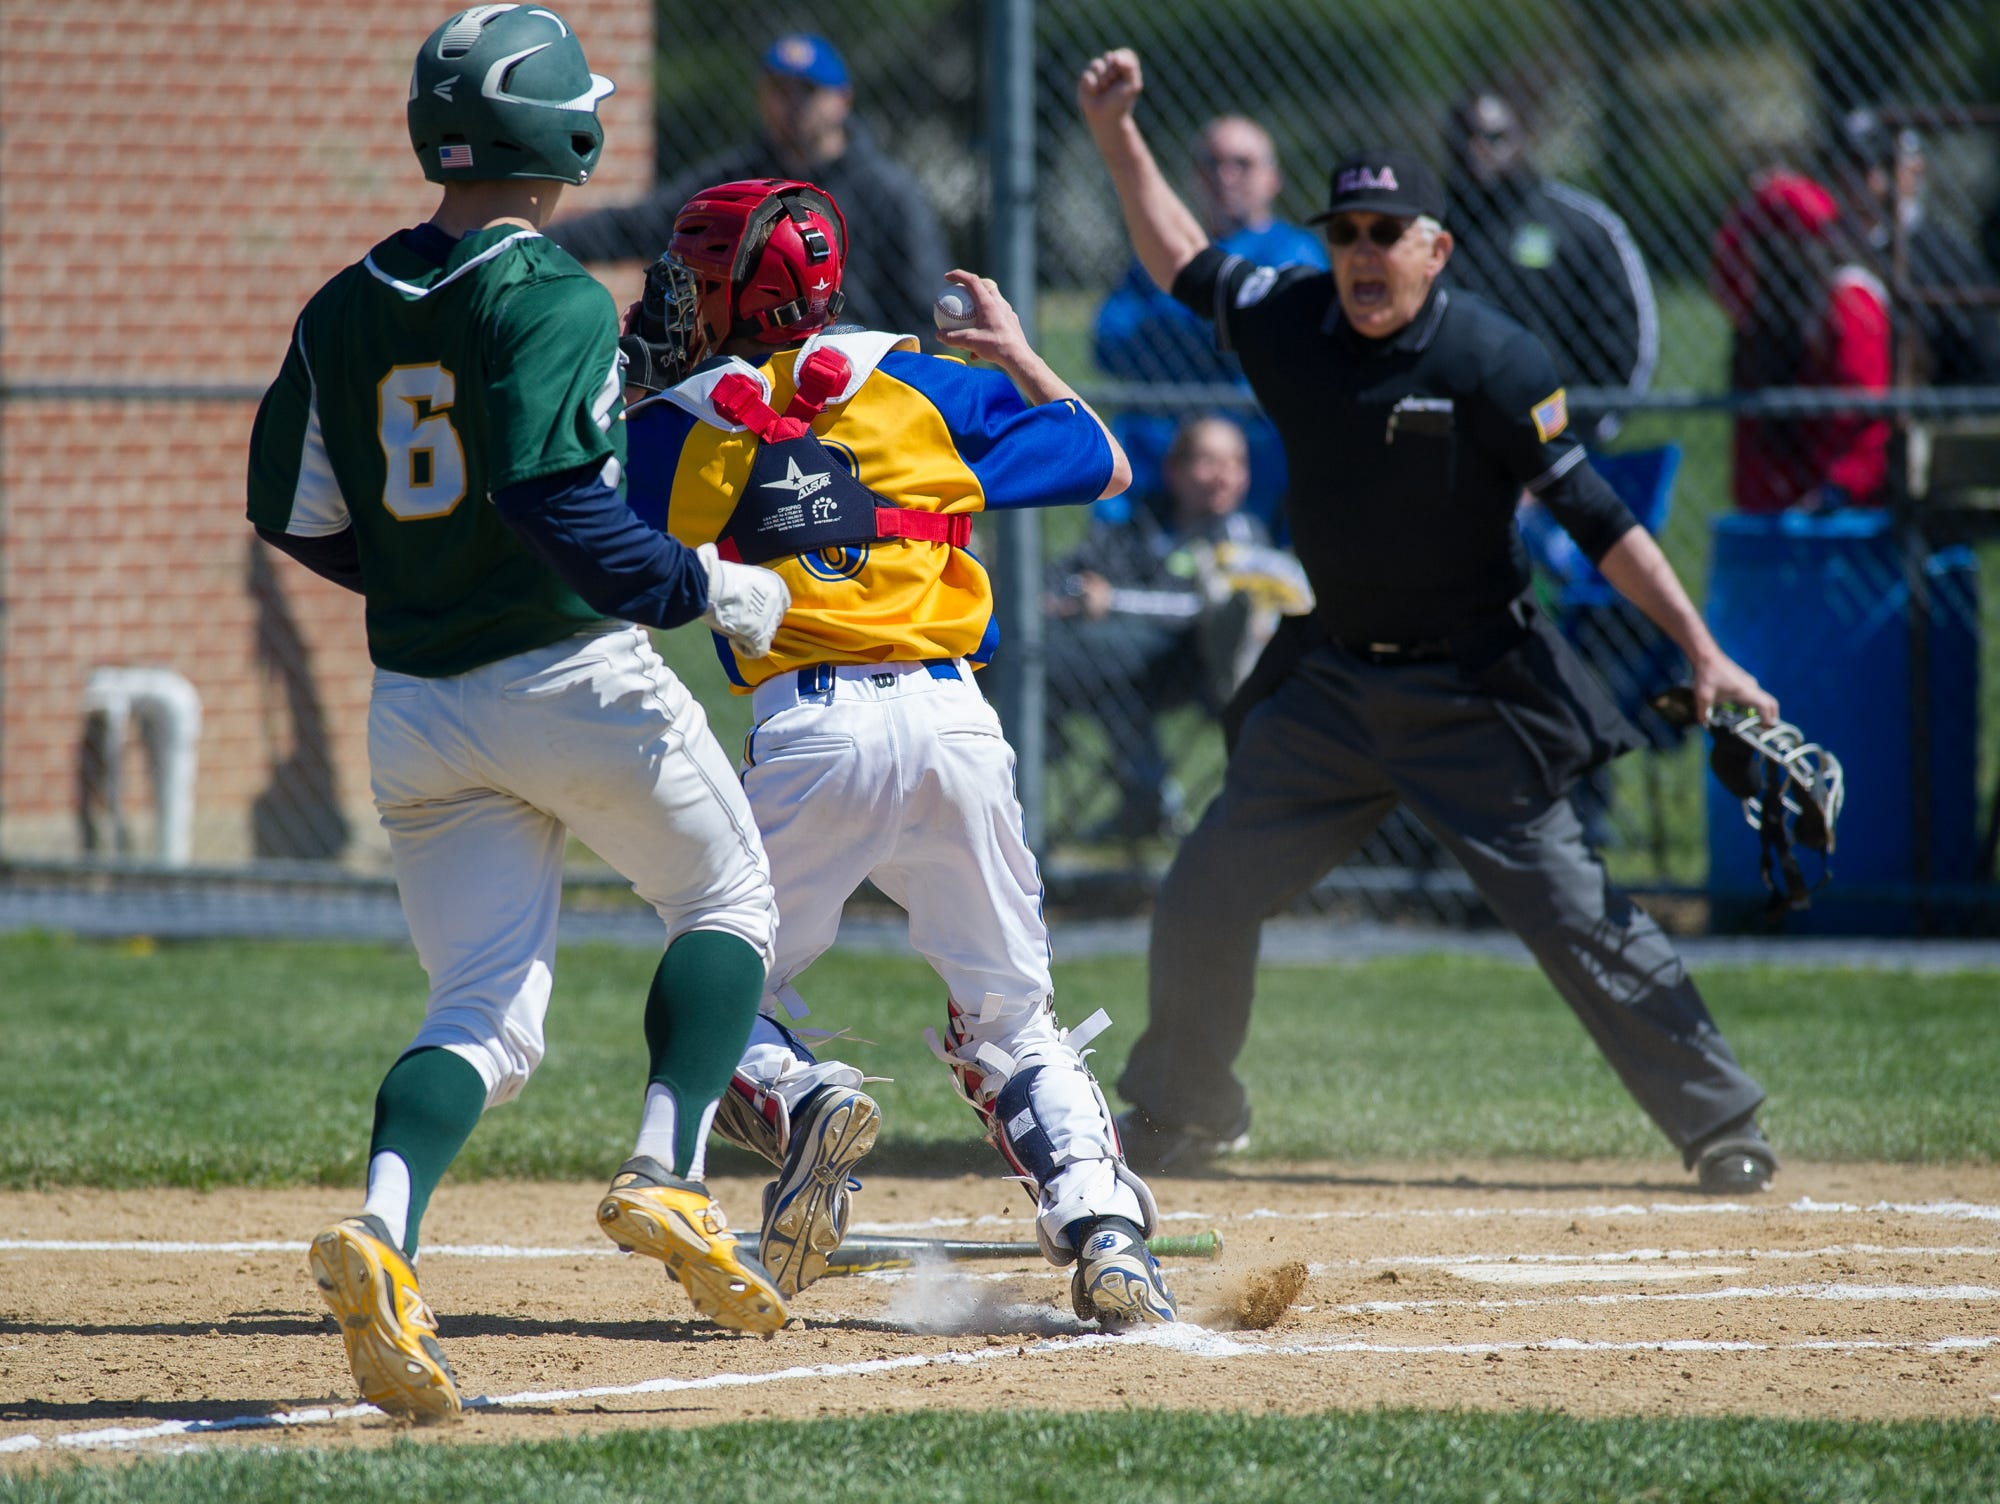 Caesar Rodney's catcher Blake Donovan (8) tags St. Mark's Tom Reich (6) out at home plate.